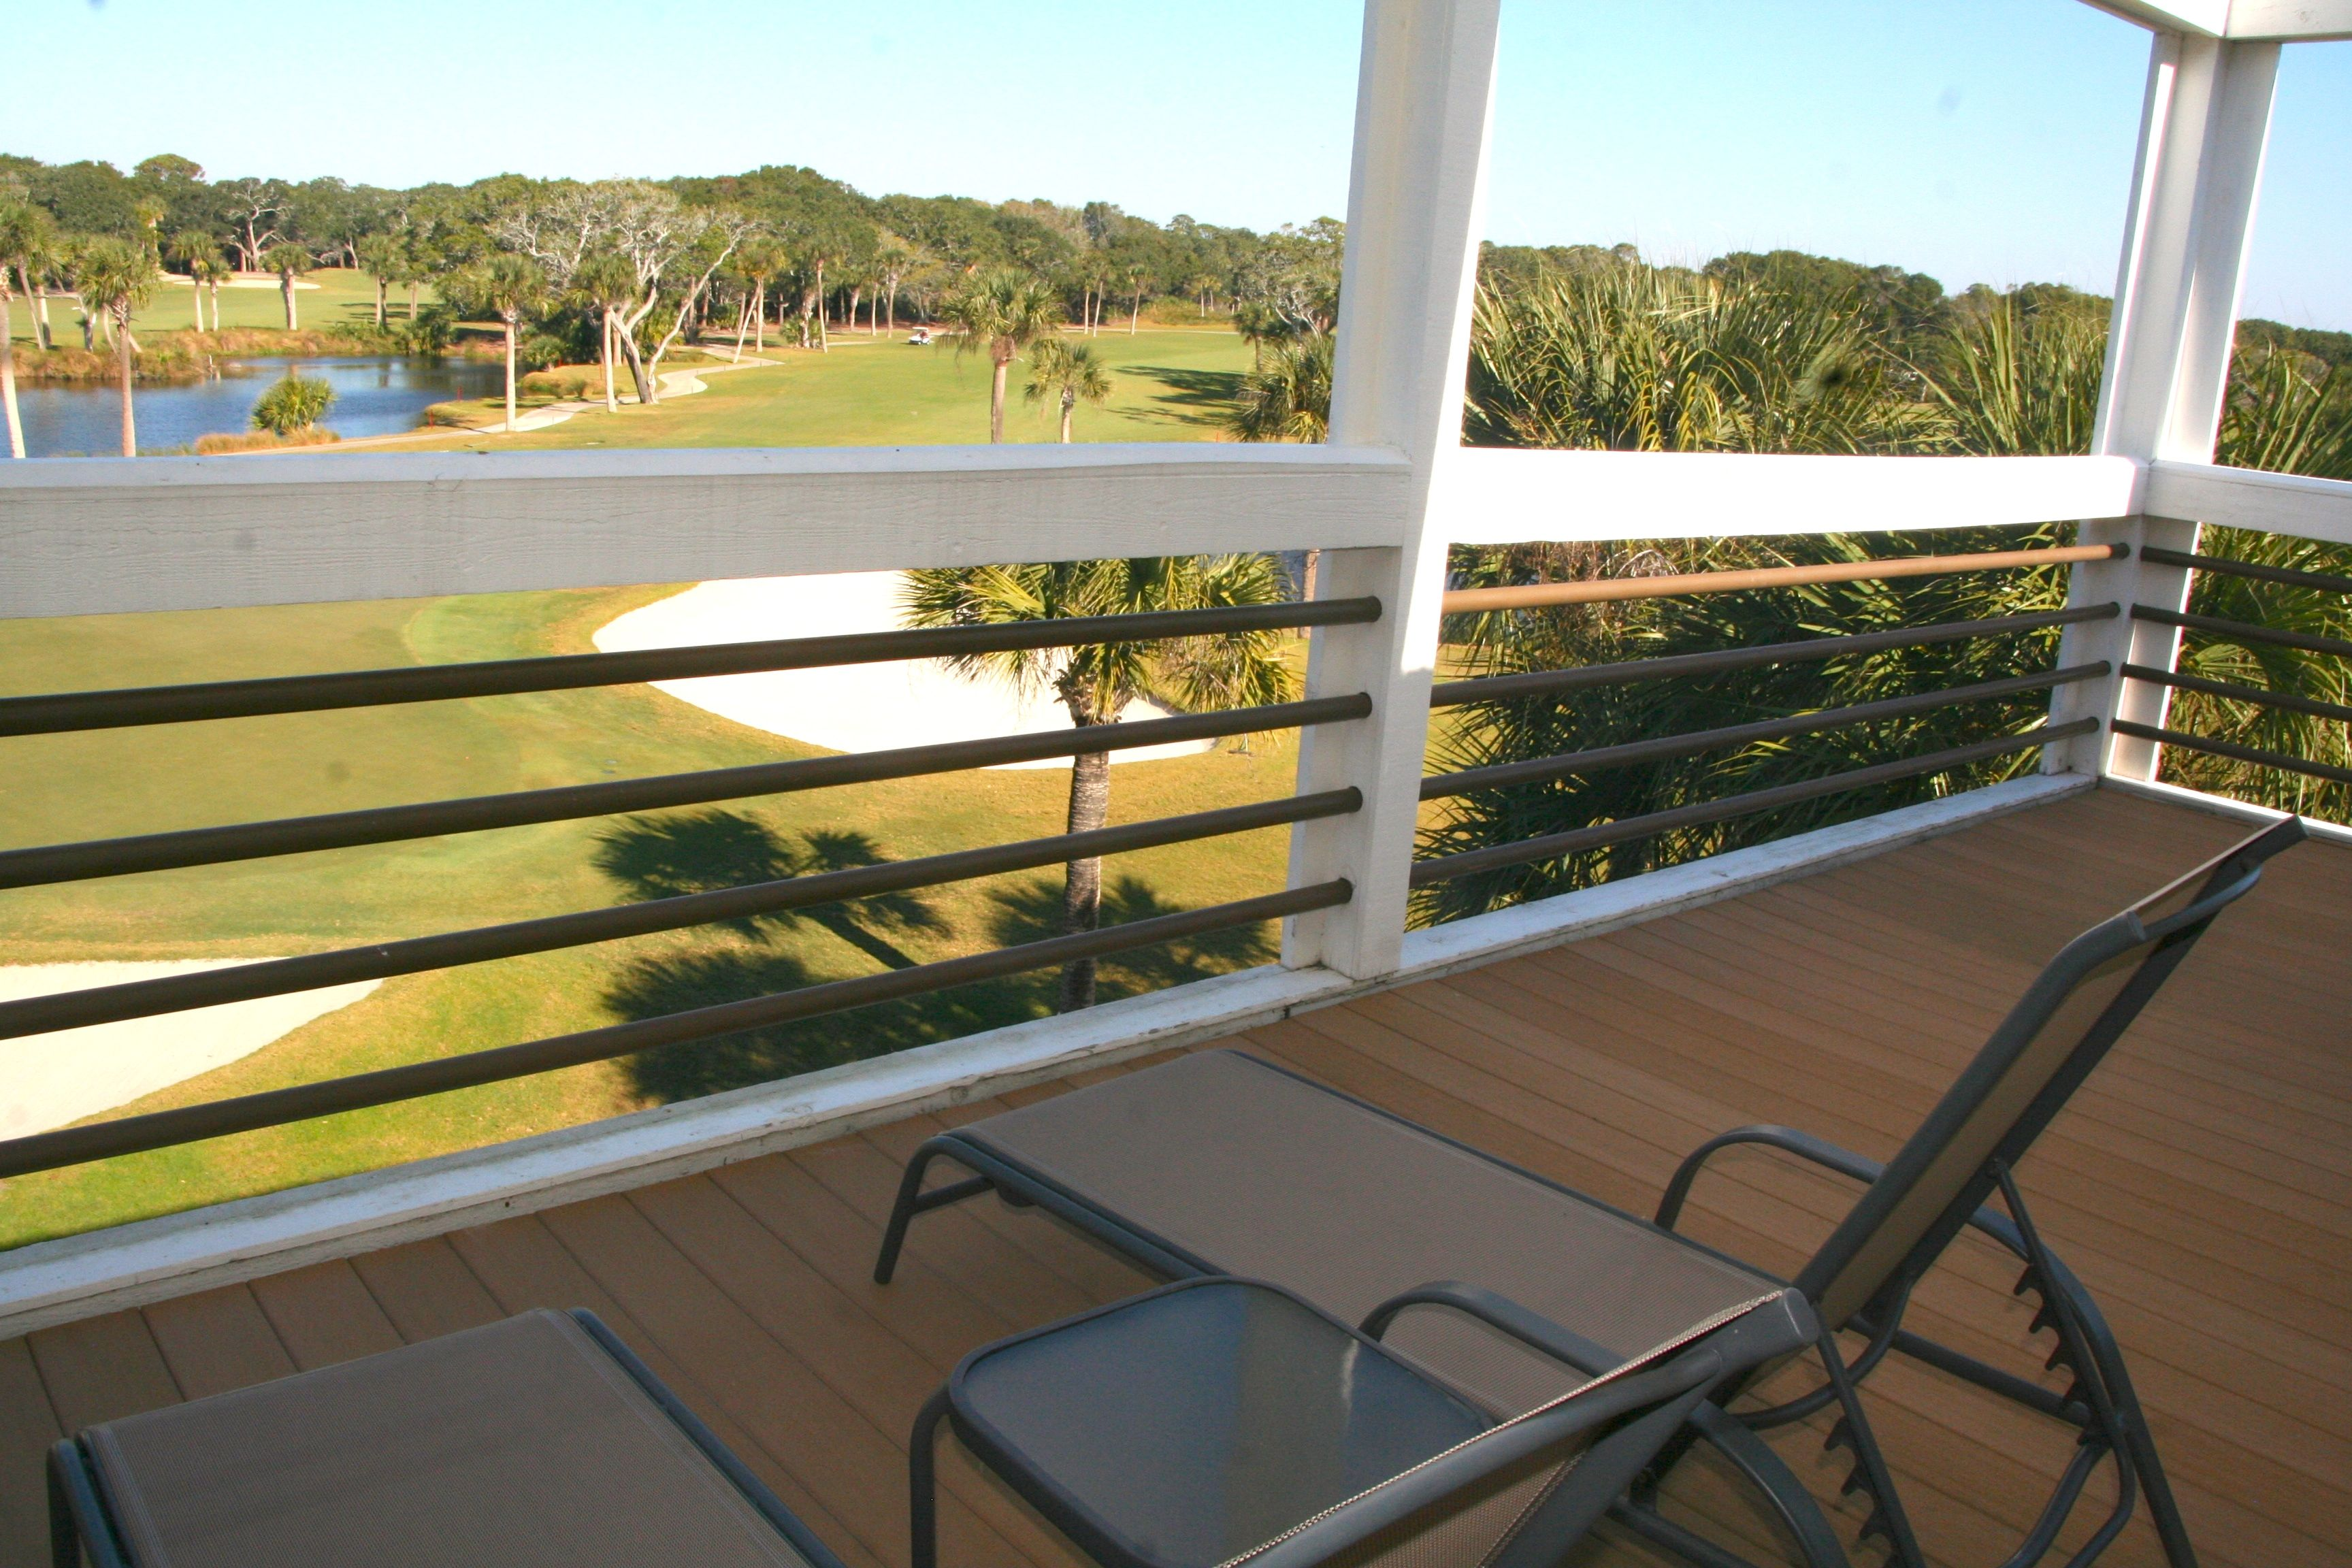 The porch is open and great for catching the sun or watching golfers & wildlife.